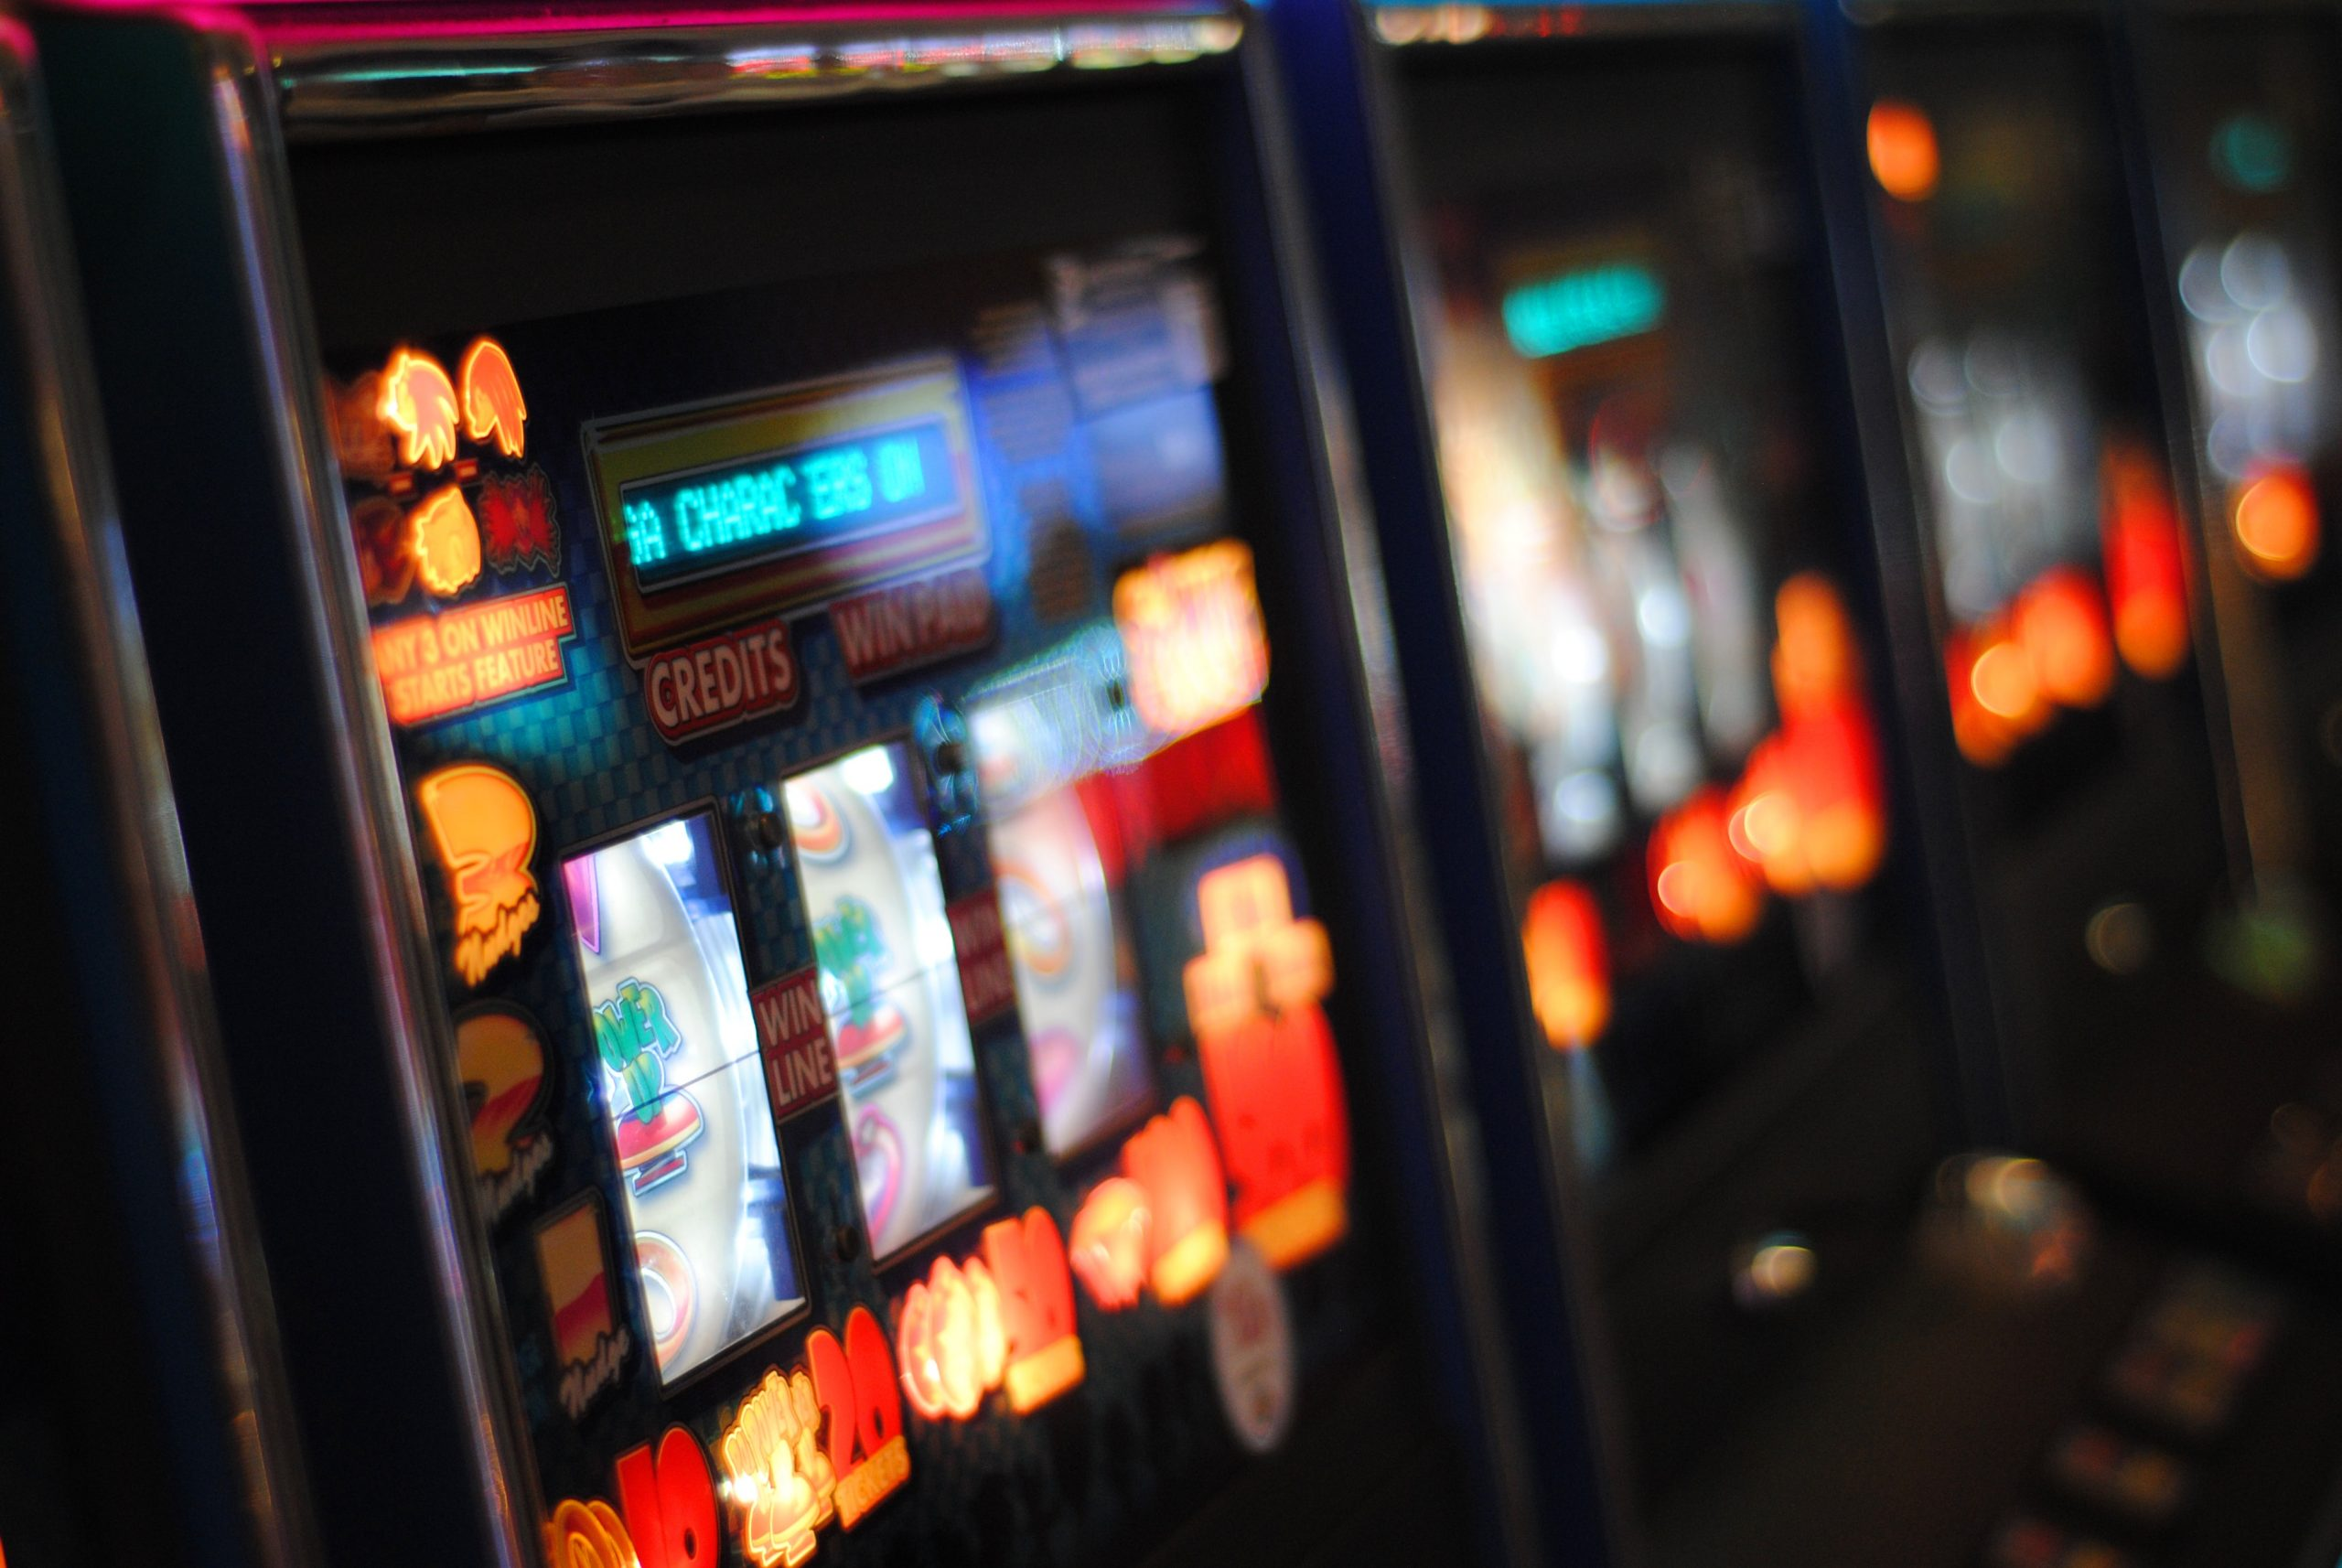 1 in 5 teenagers admit to gambling in Spain